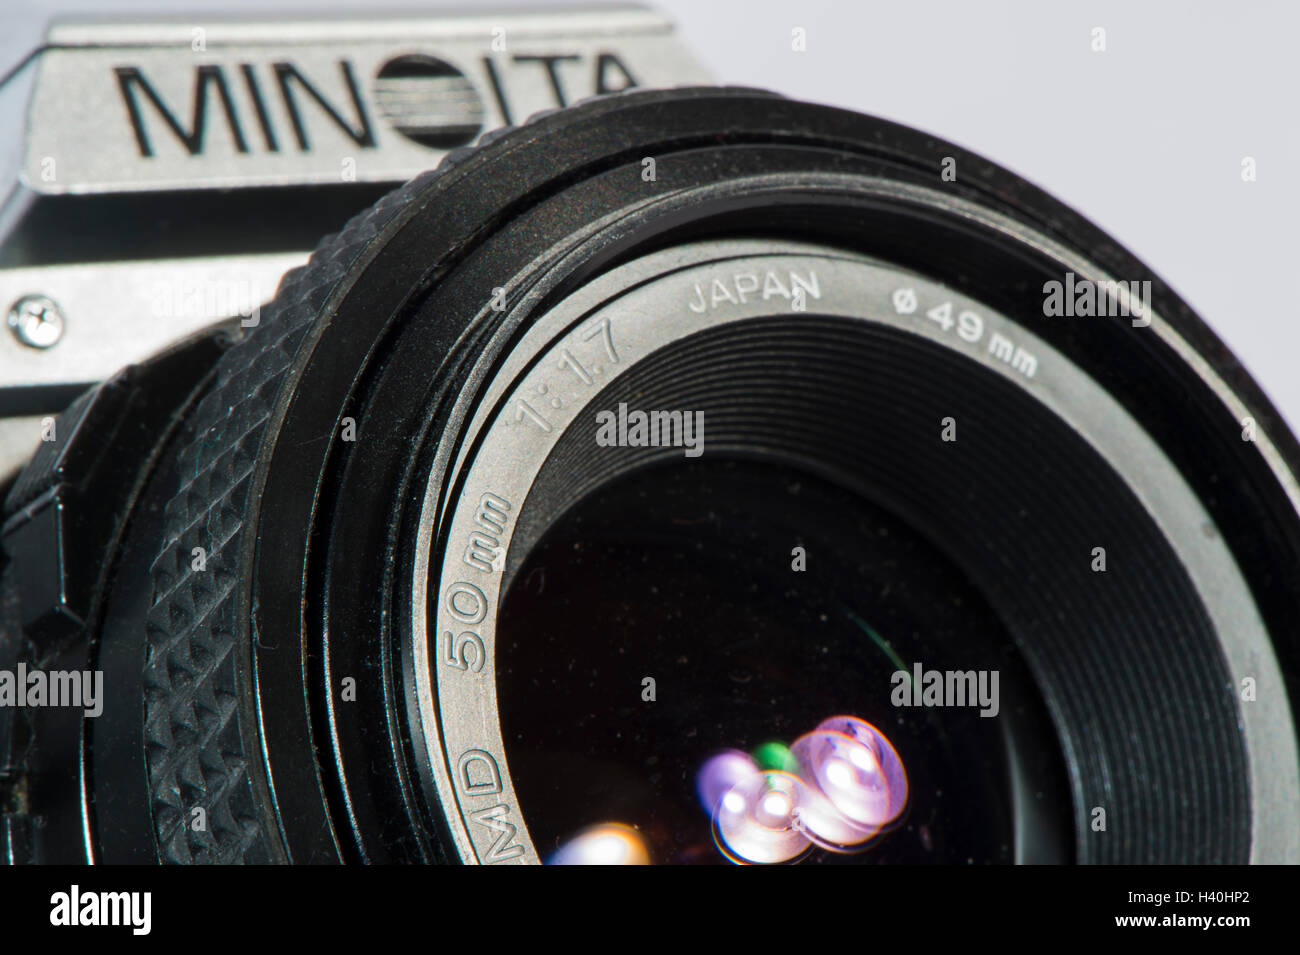 Detail of classic 1980's Minolta X-300 - 35mm film, SLR camera with a 50mm Minolta prime lens, seen against - Stock Image